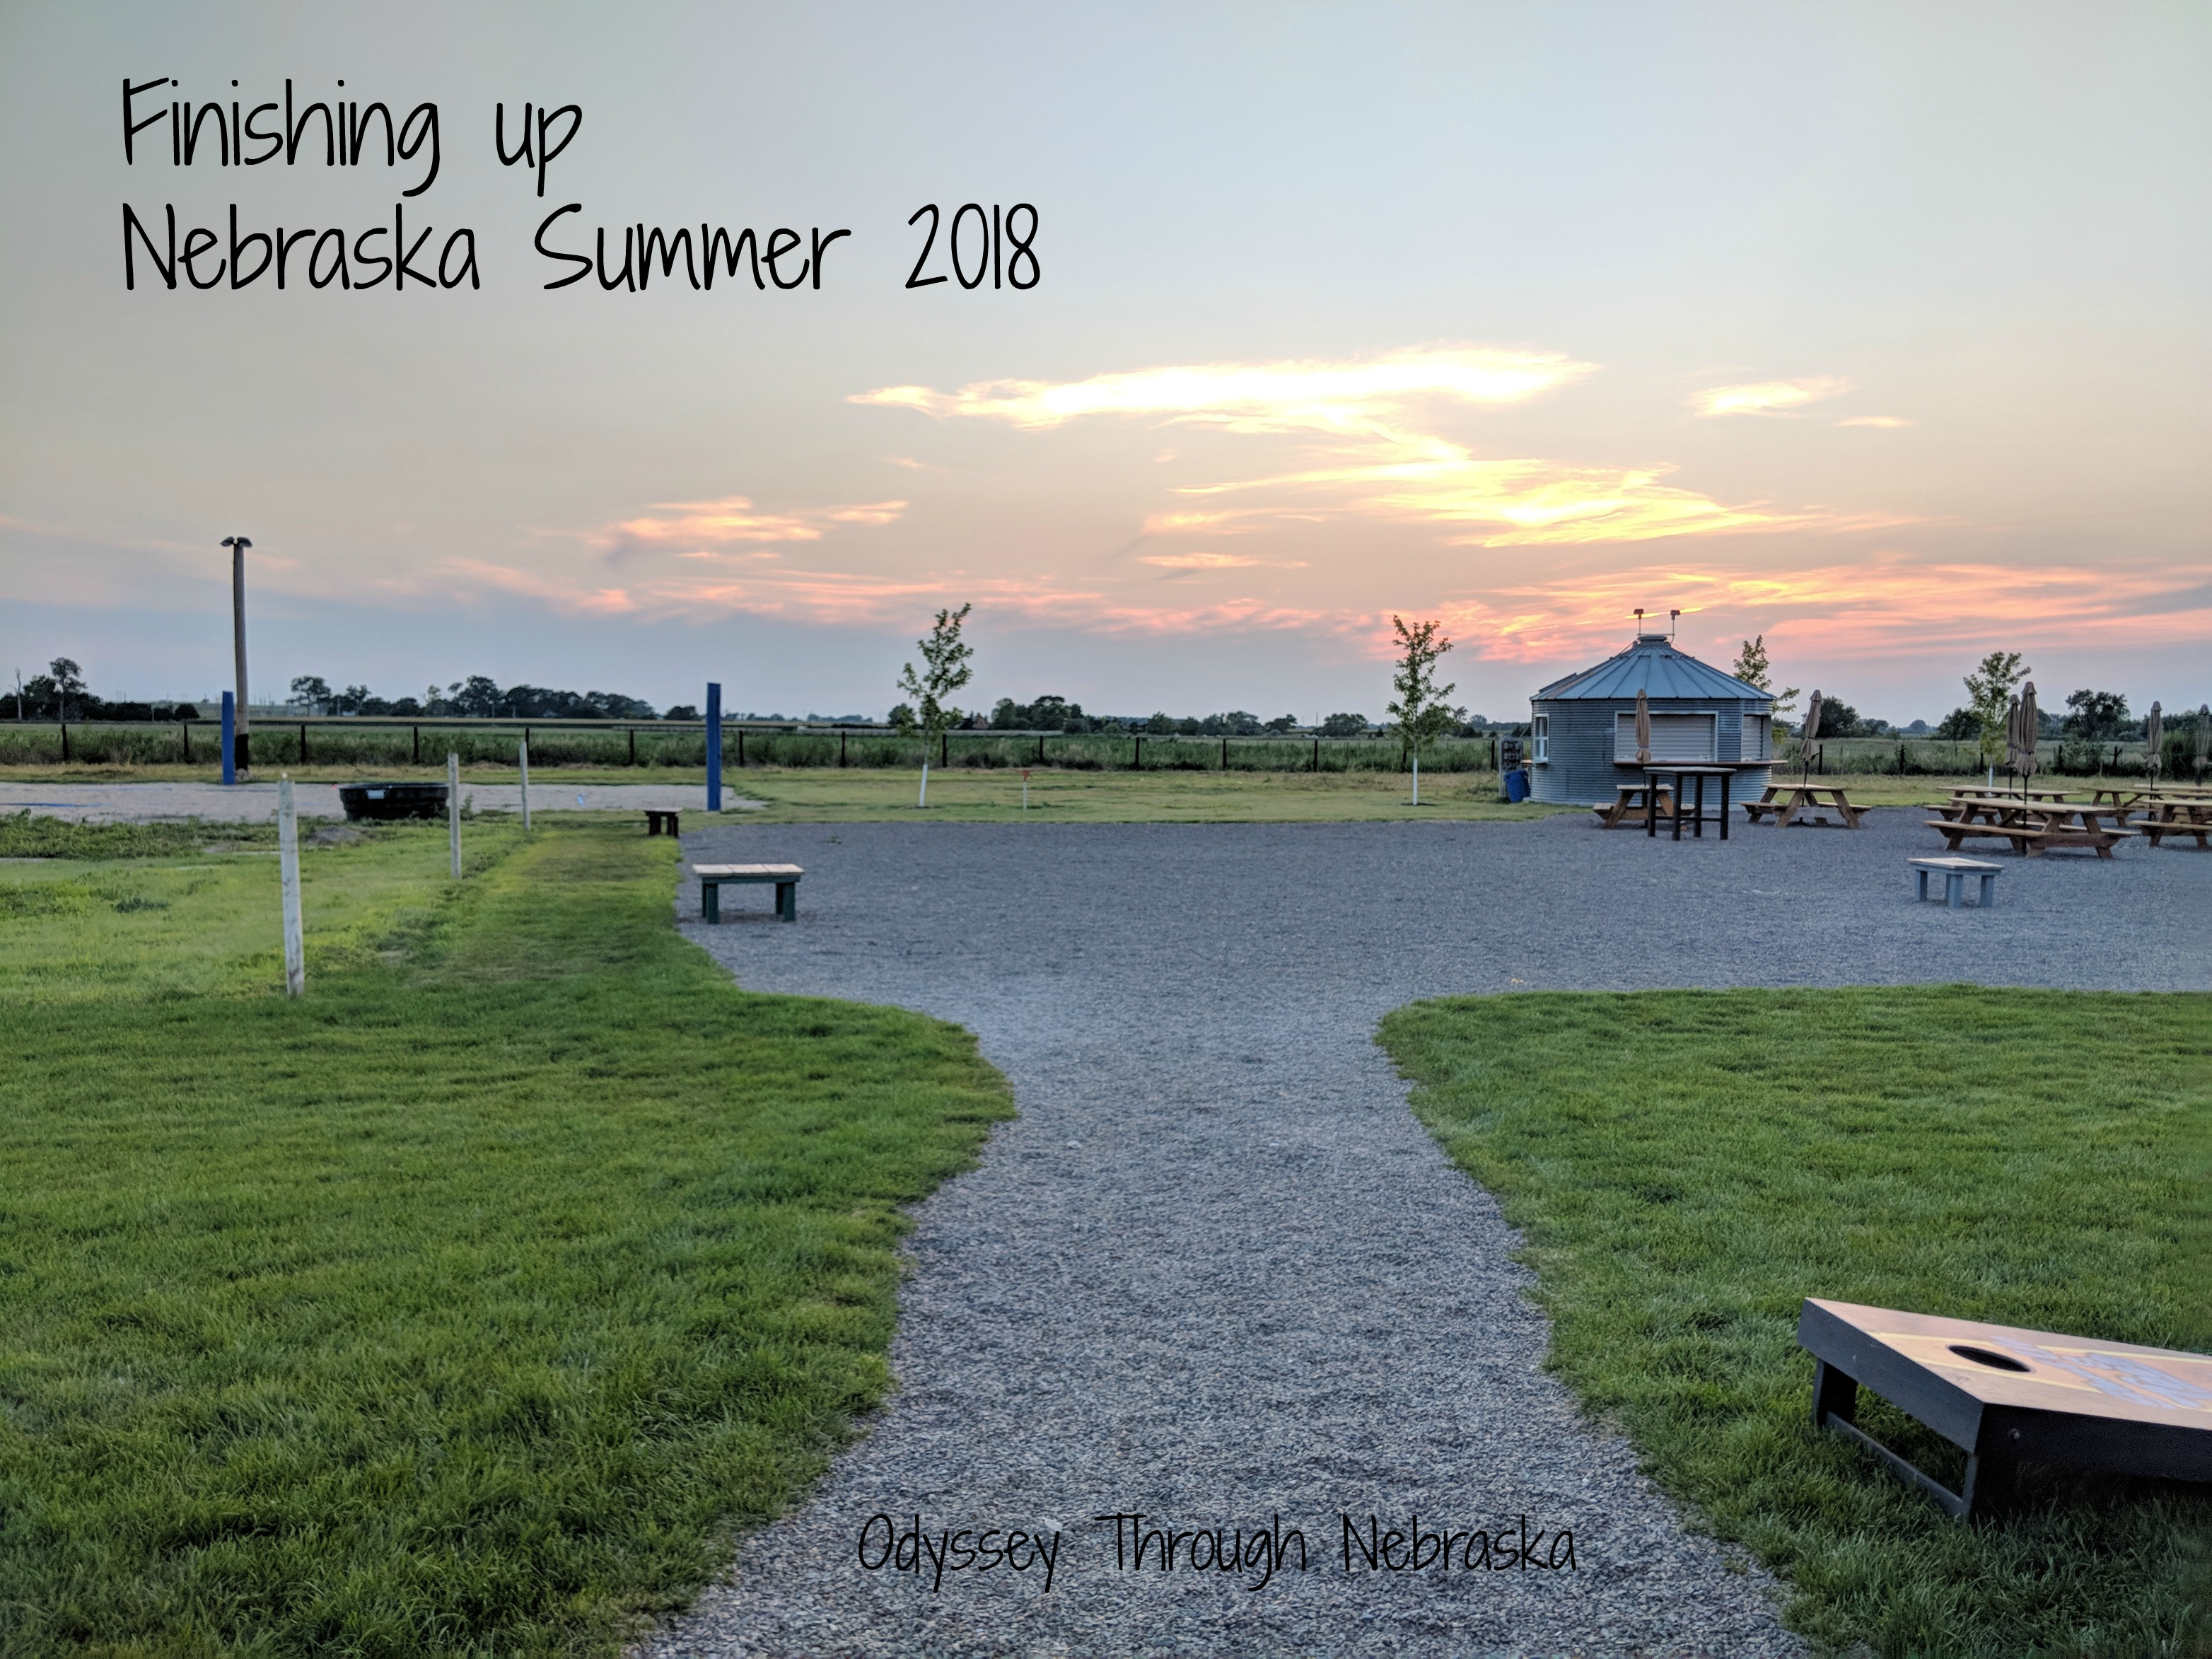 Finishing up Nebraska Summer 2018